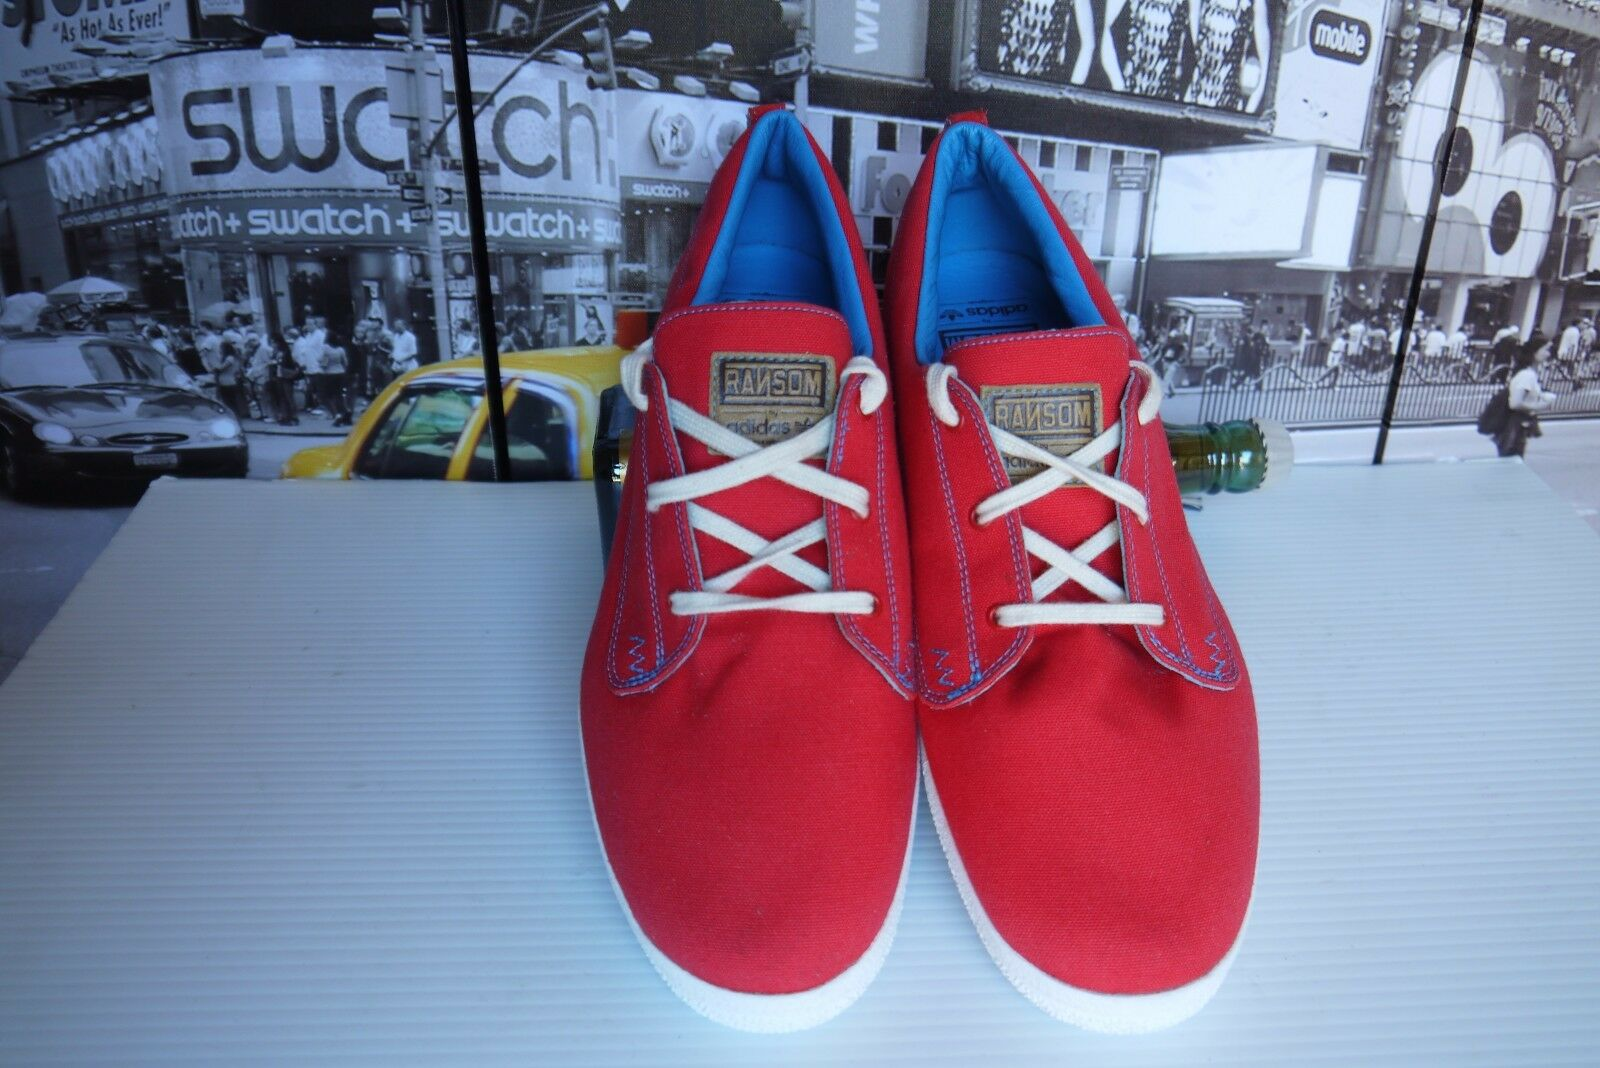 2009 Adidas Ransom g13316 Red Canvas Sneakers men's US 10   UK 9.5   EU 44